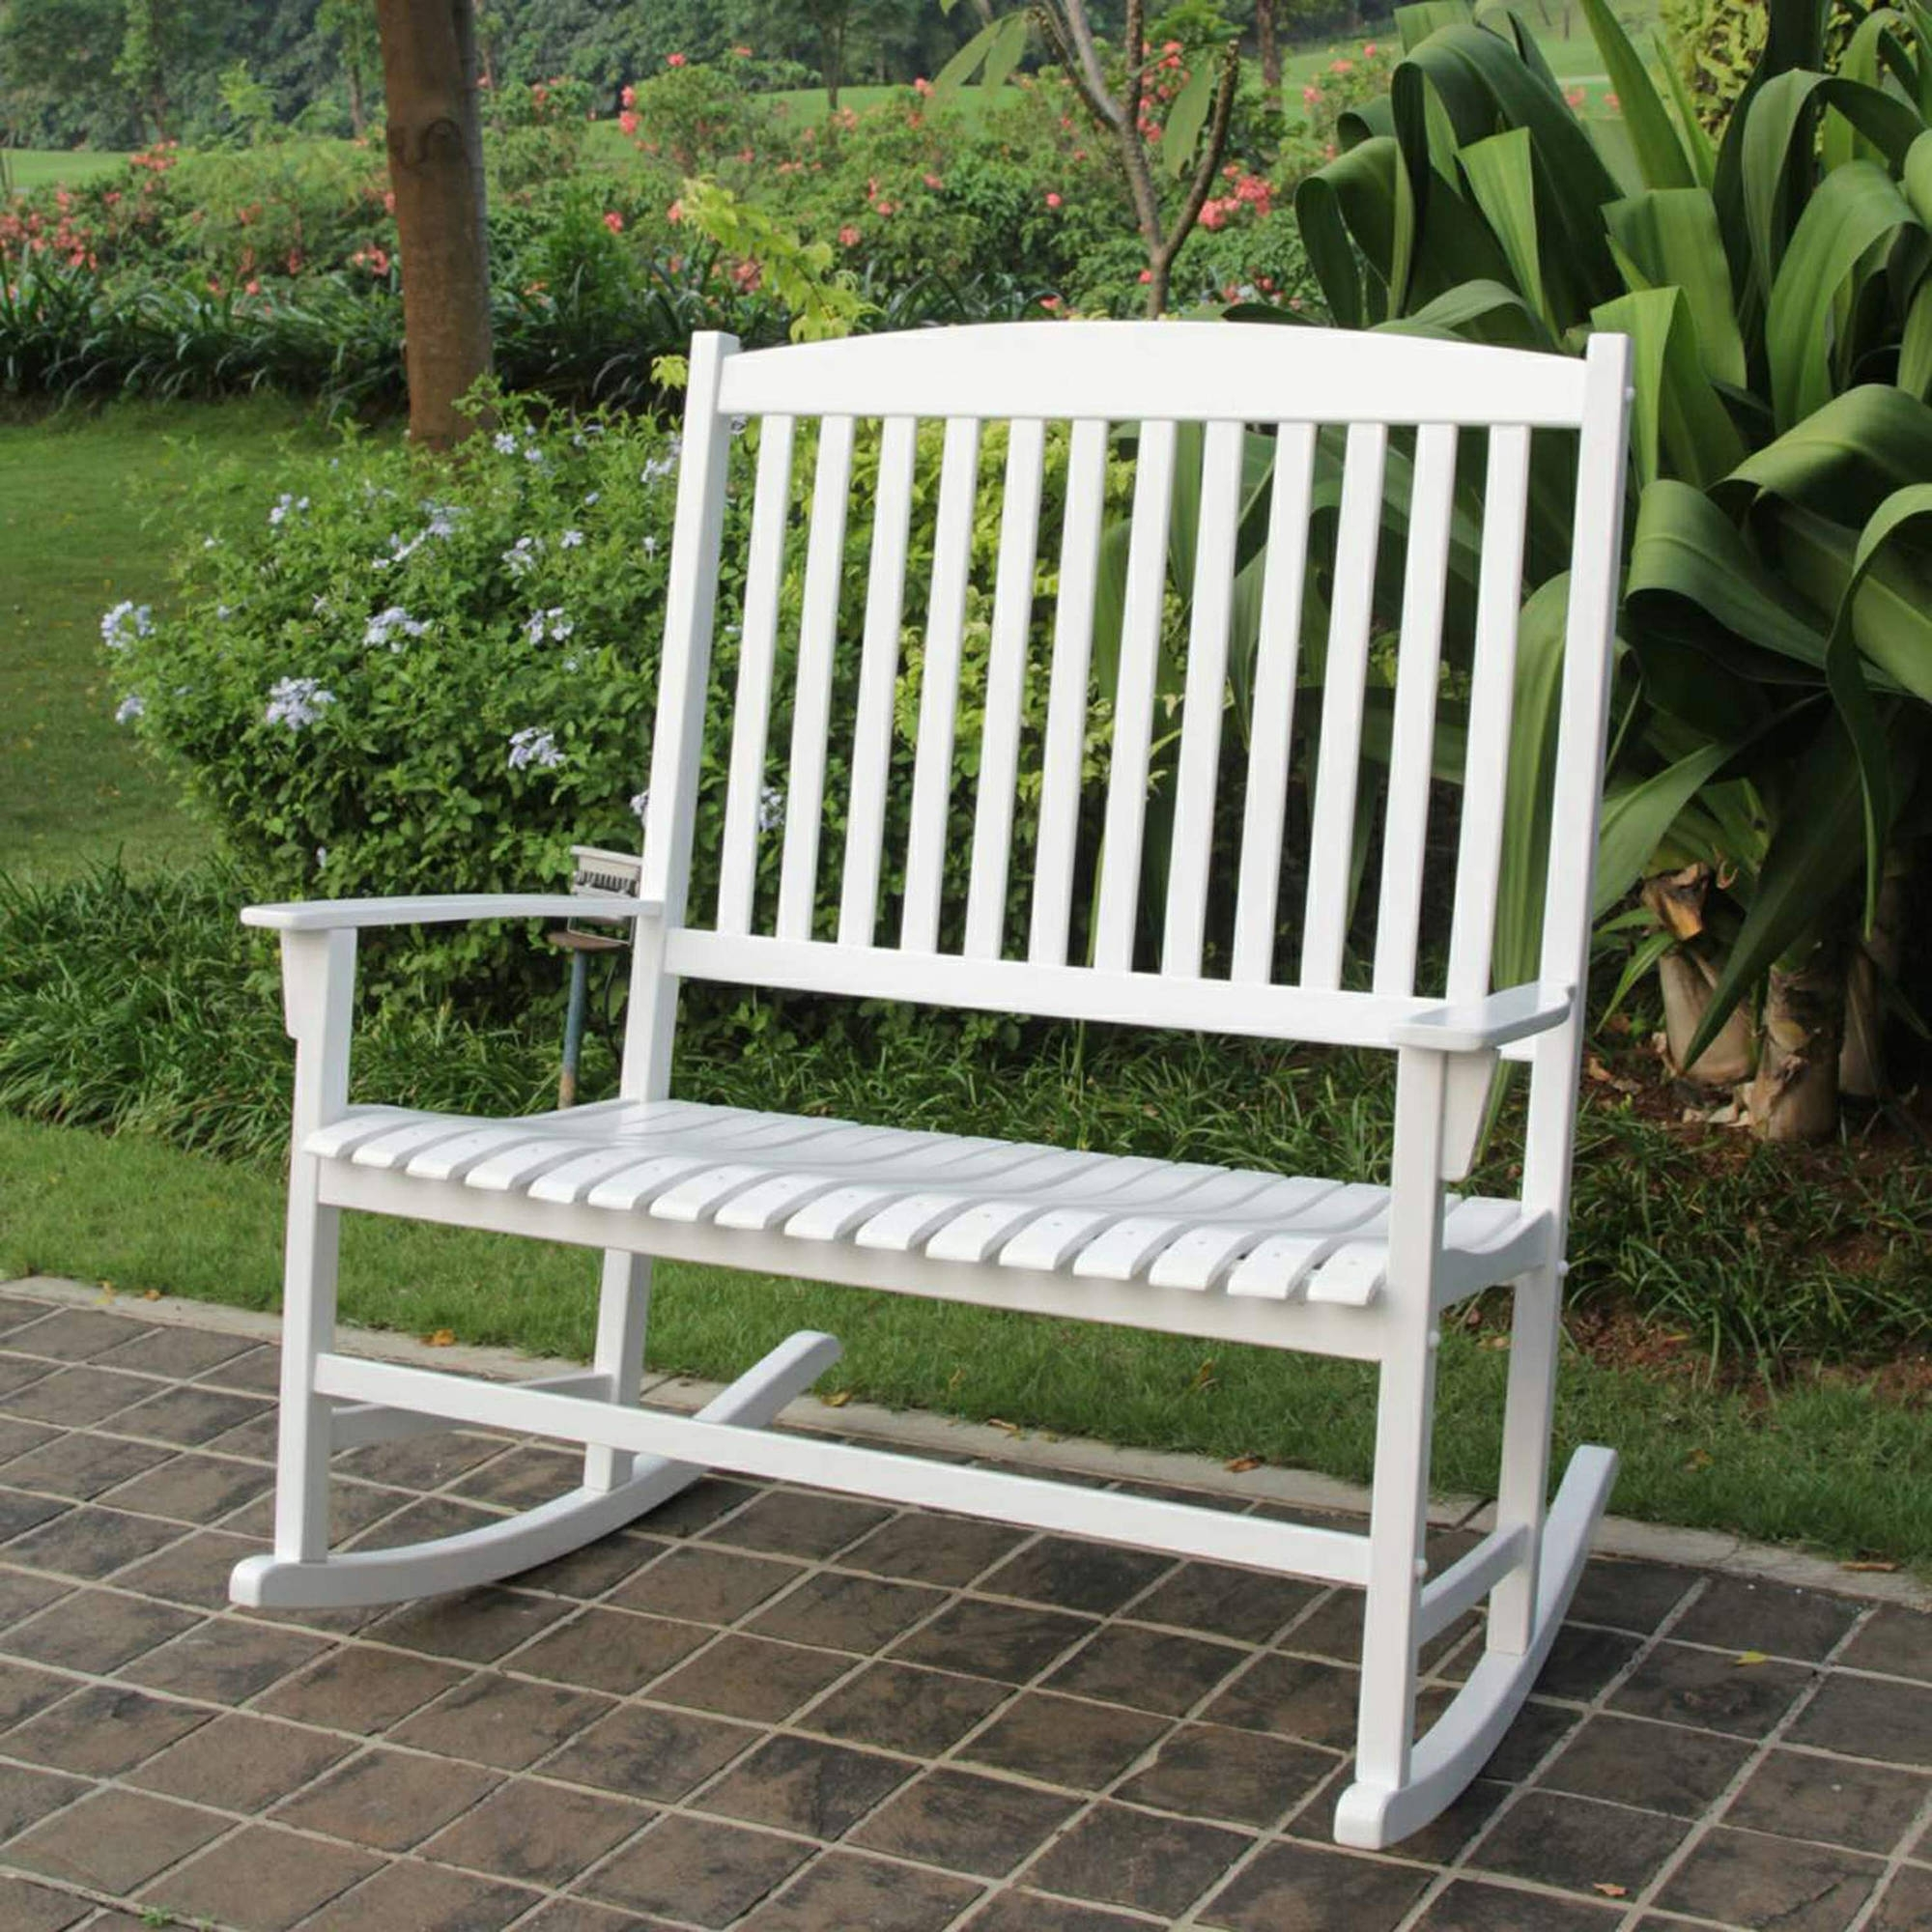 Patio Loveseat White Hardwood Outdoor Rocking Chair For 2 With Outdoor Rocking Chairs (View 8 of 15)